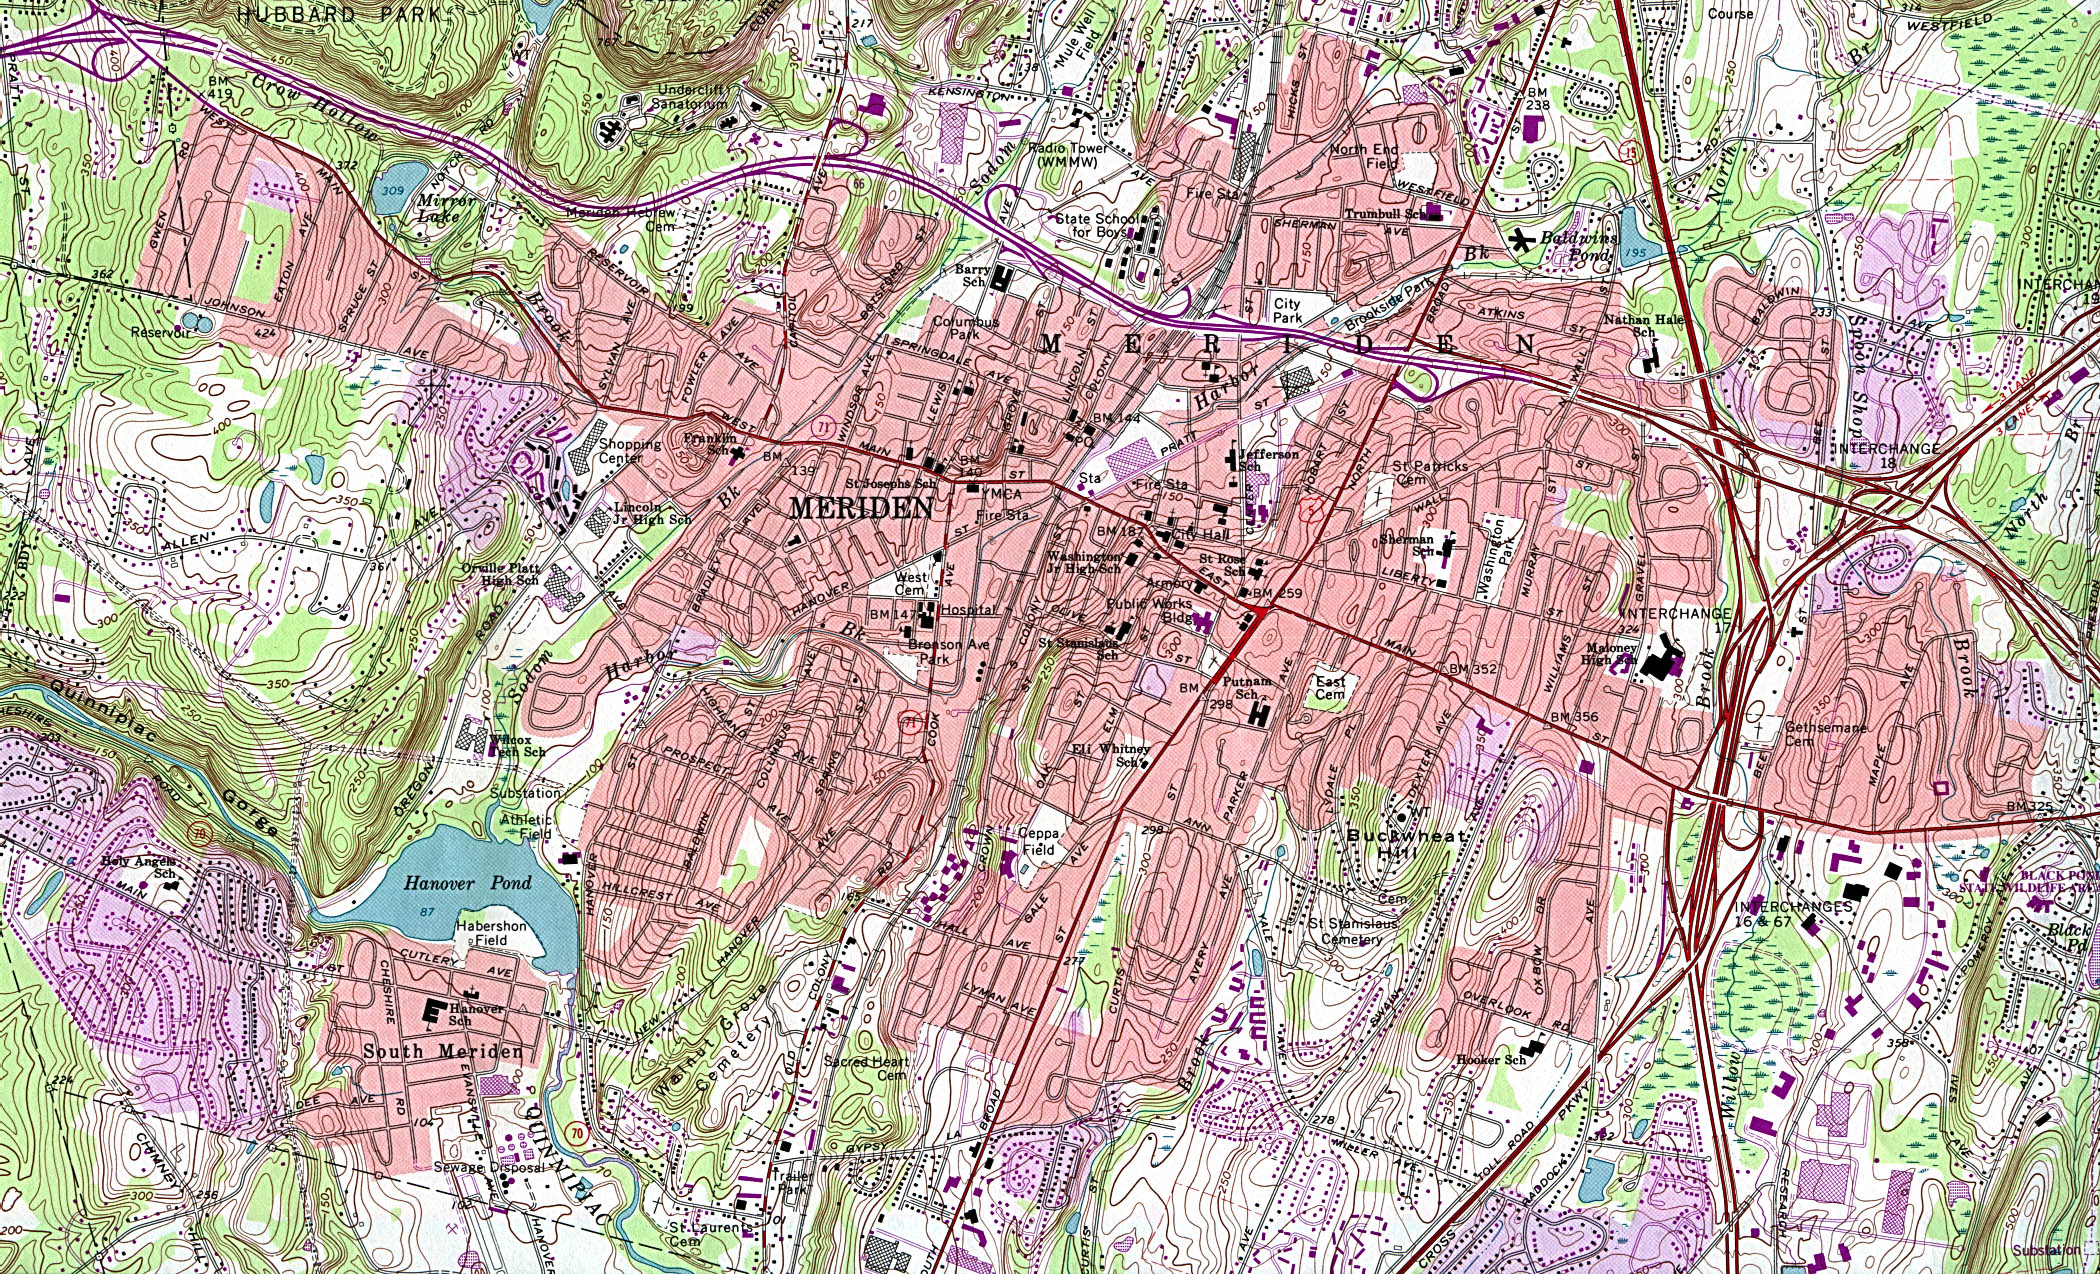 Meriden Topographic City Map, Connecticut, United States